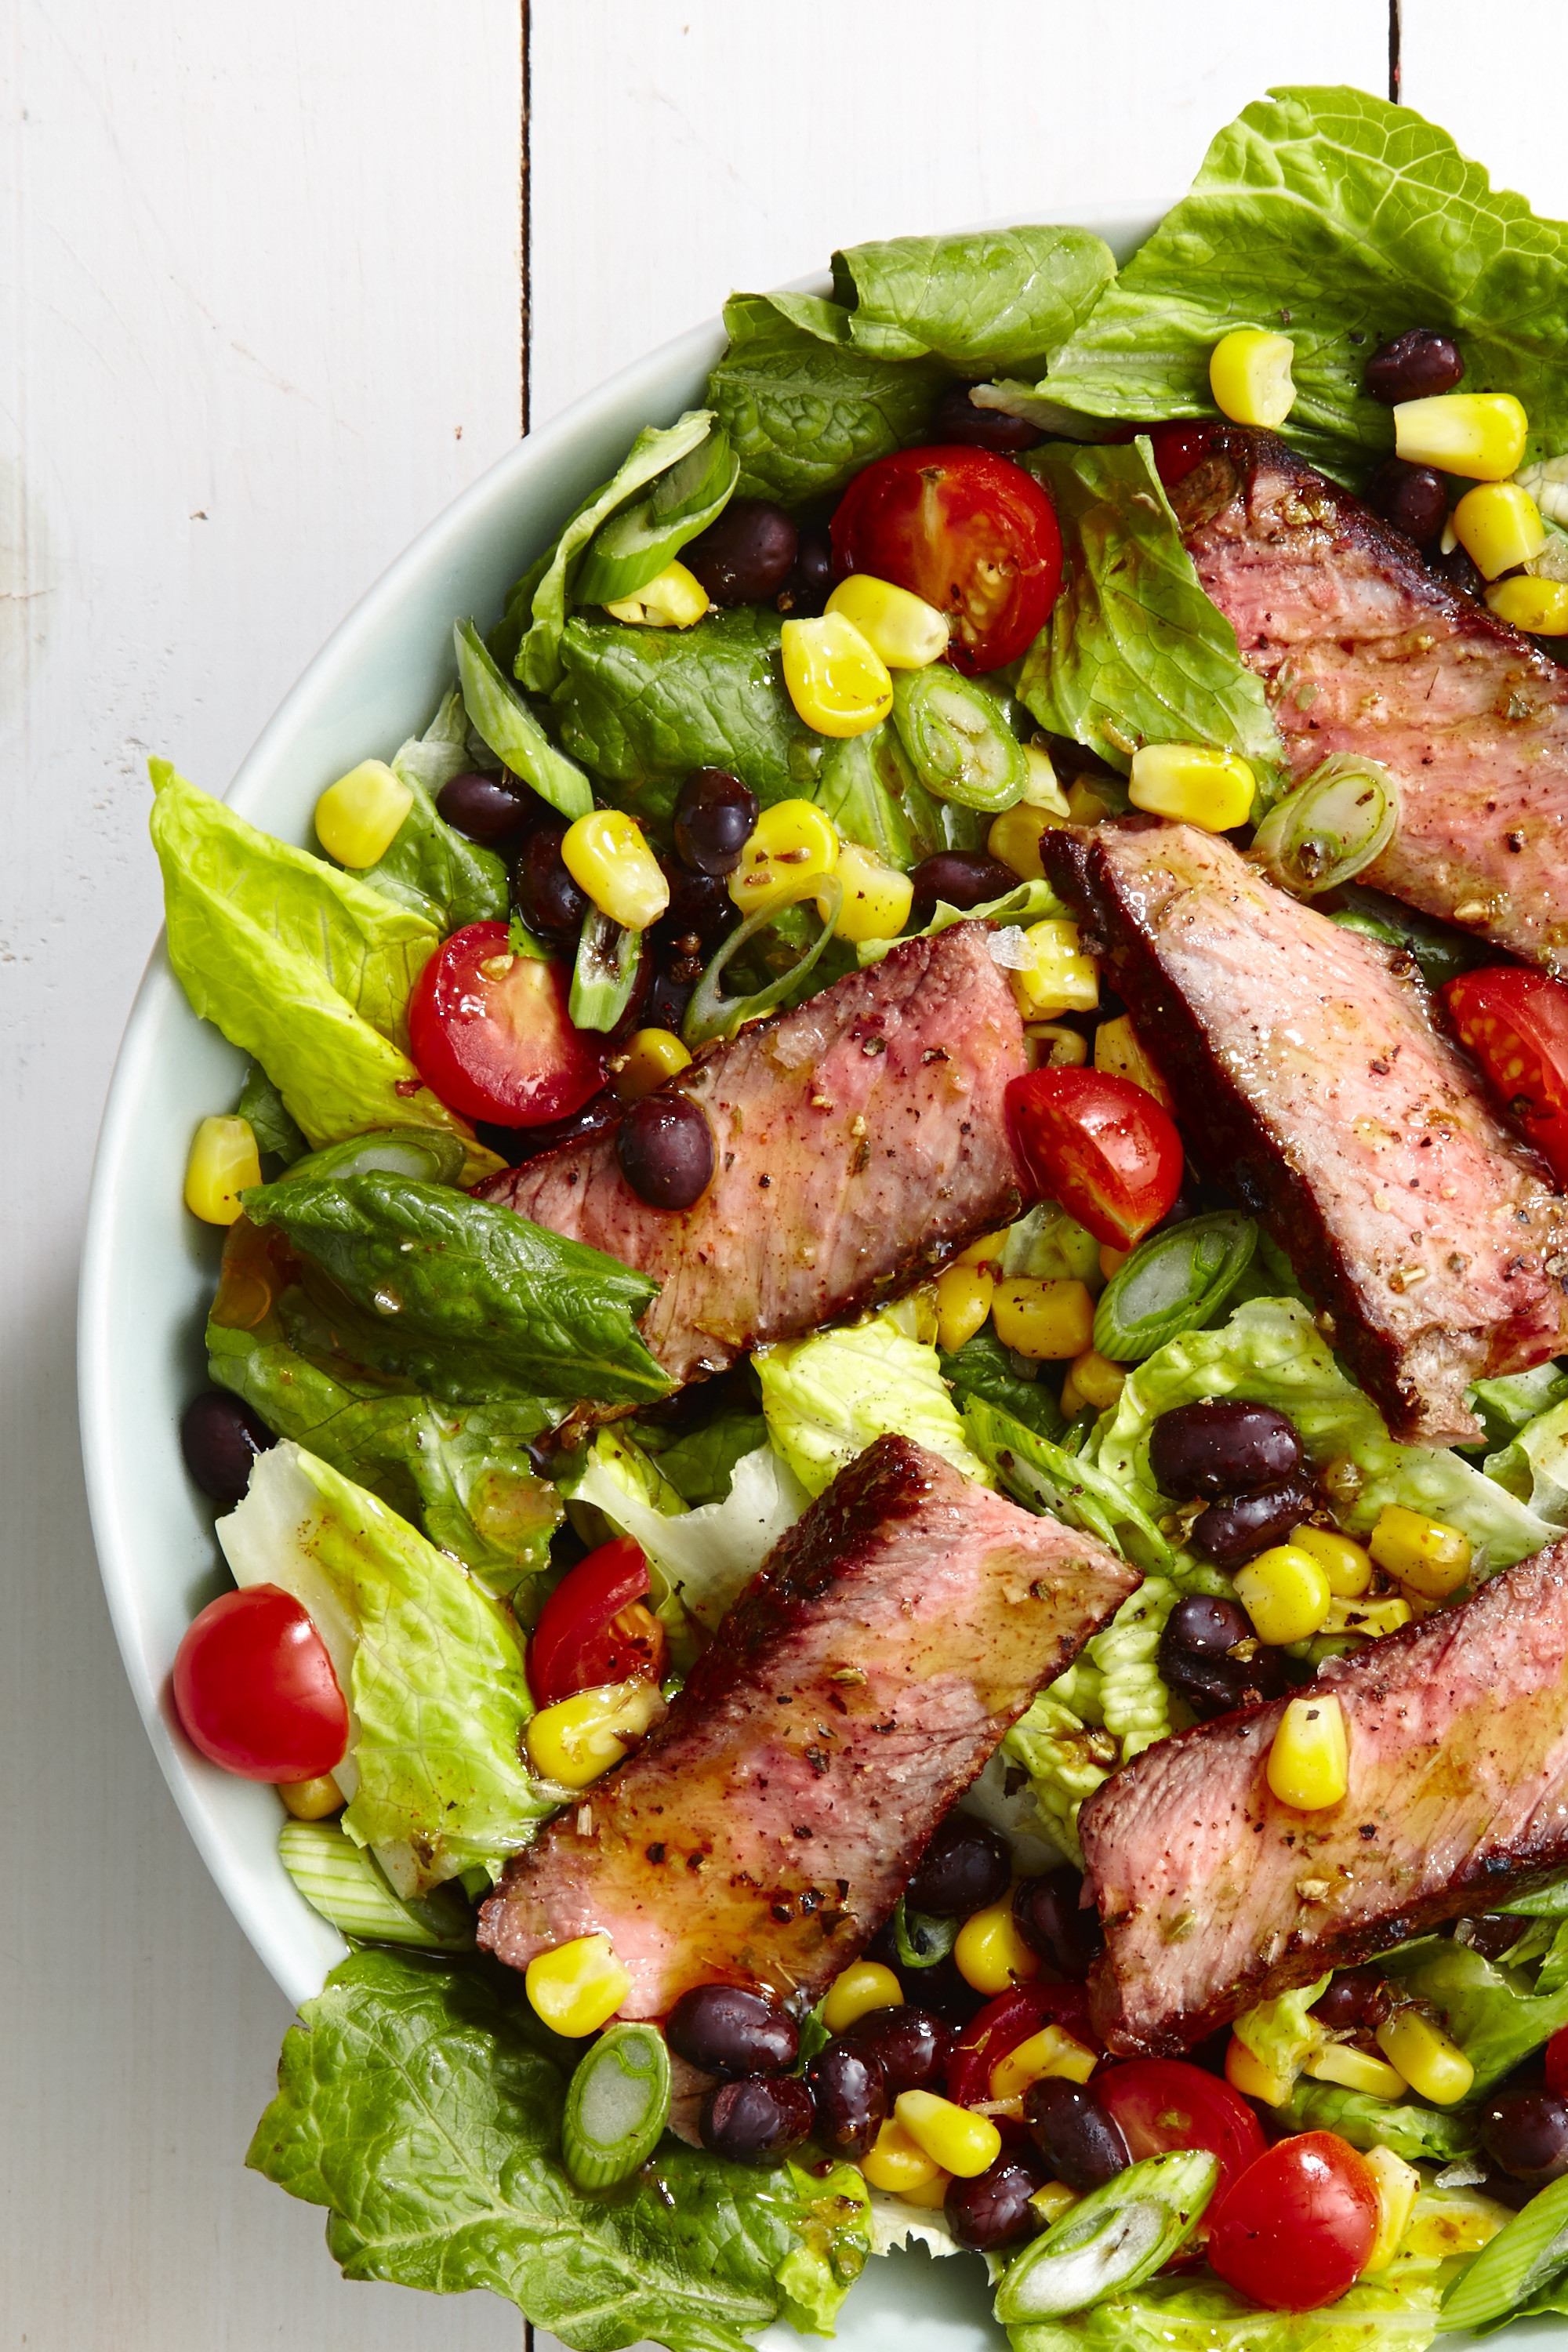 Healthy Salads For Dinner  35 Healthy Dinner Salad Recipes Best Ideas for Healthy